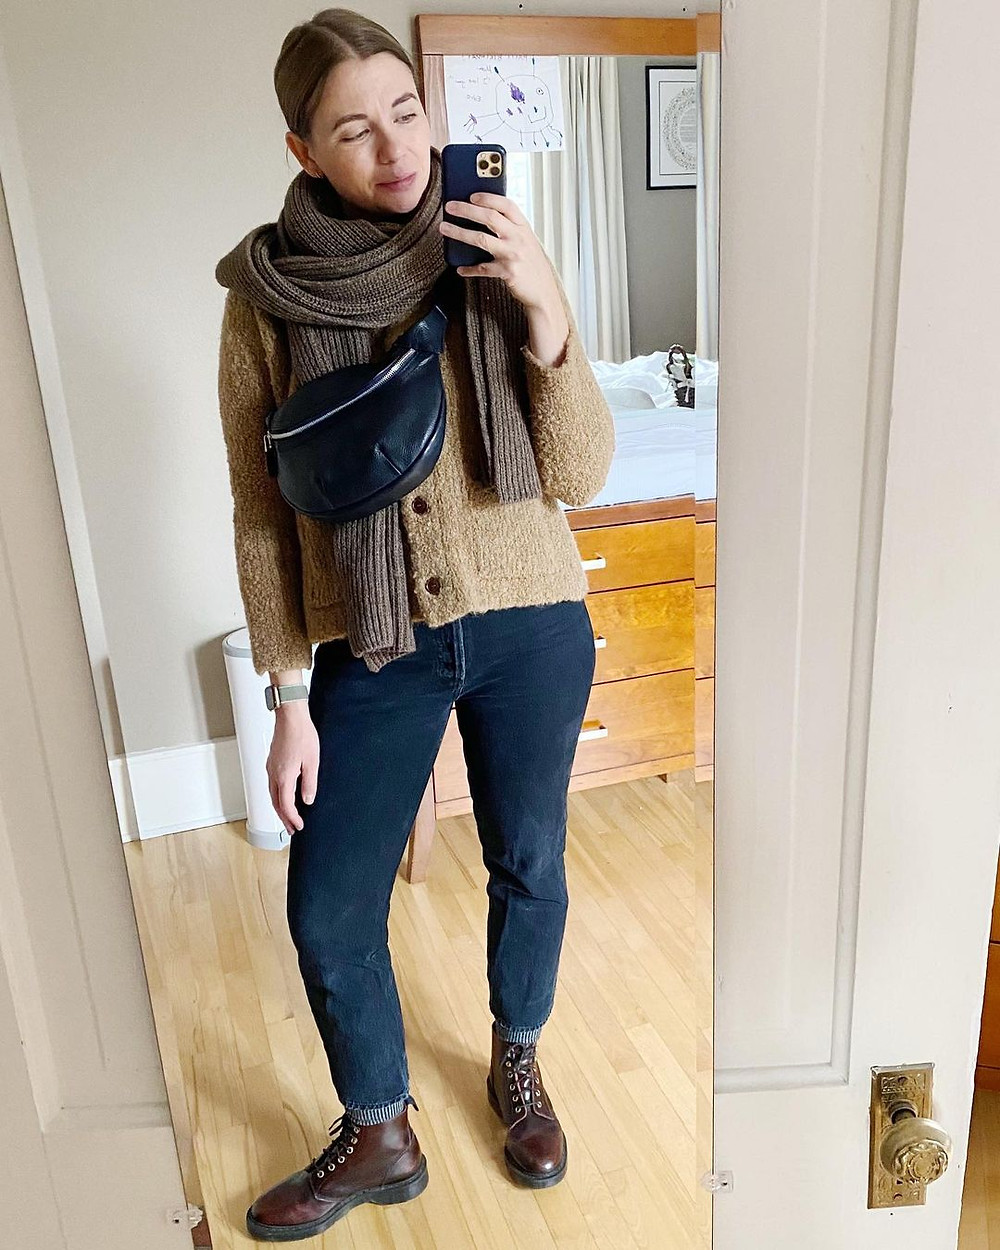 woman wears black fanny pack, brown scarf, light brown fuzzy sweater, blue jeans, and brown boots while posing for a selfie in a full length mirror indoors